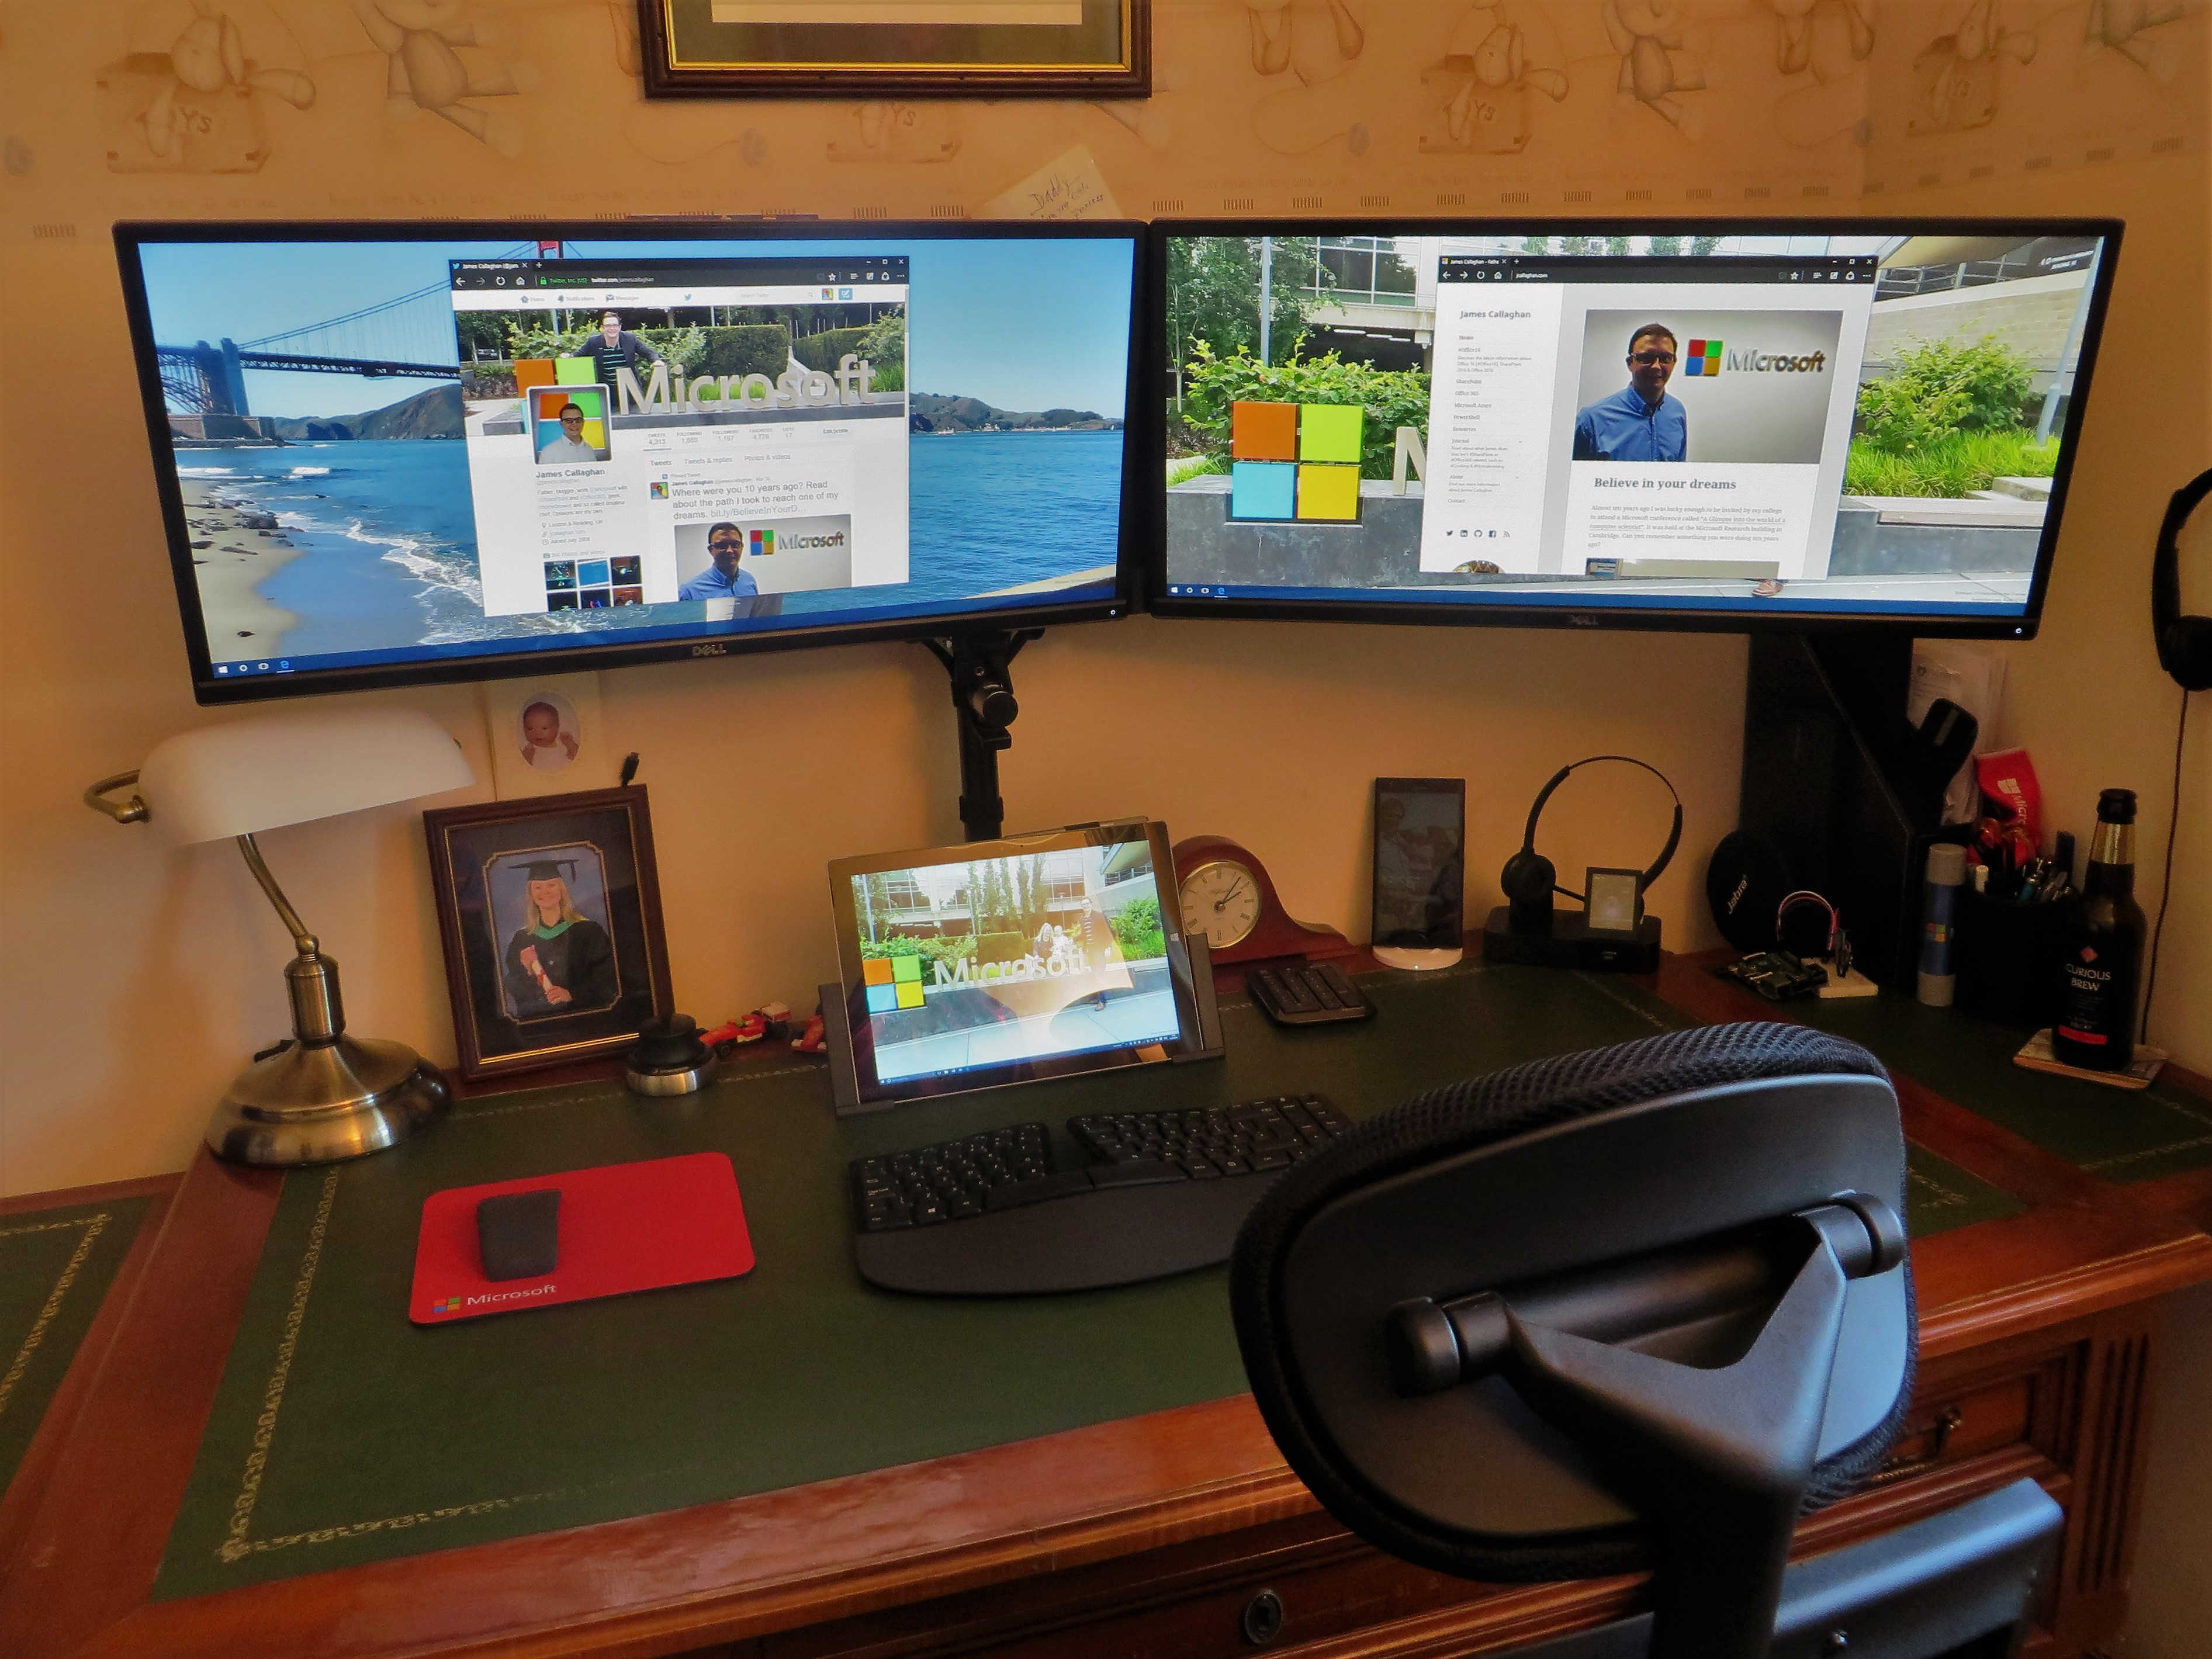 medium resolution of how to daisy chain multiple monitors on a surface pro 3 running daisy chain monitors wiring diagram